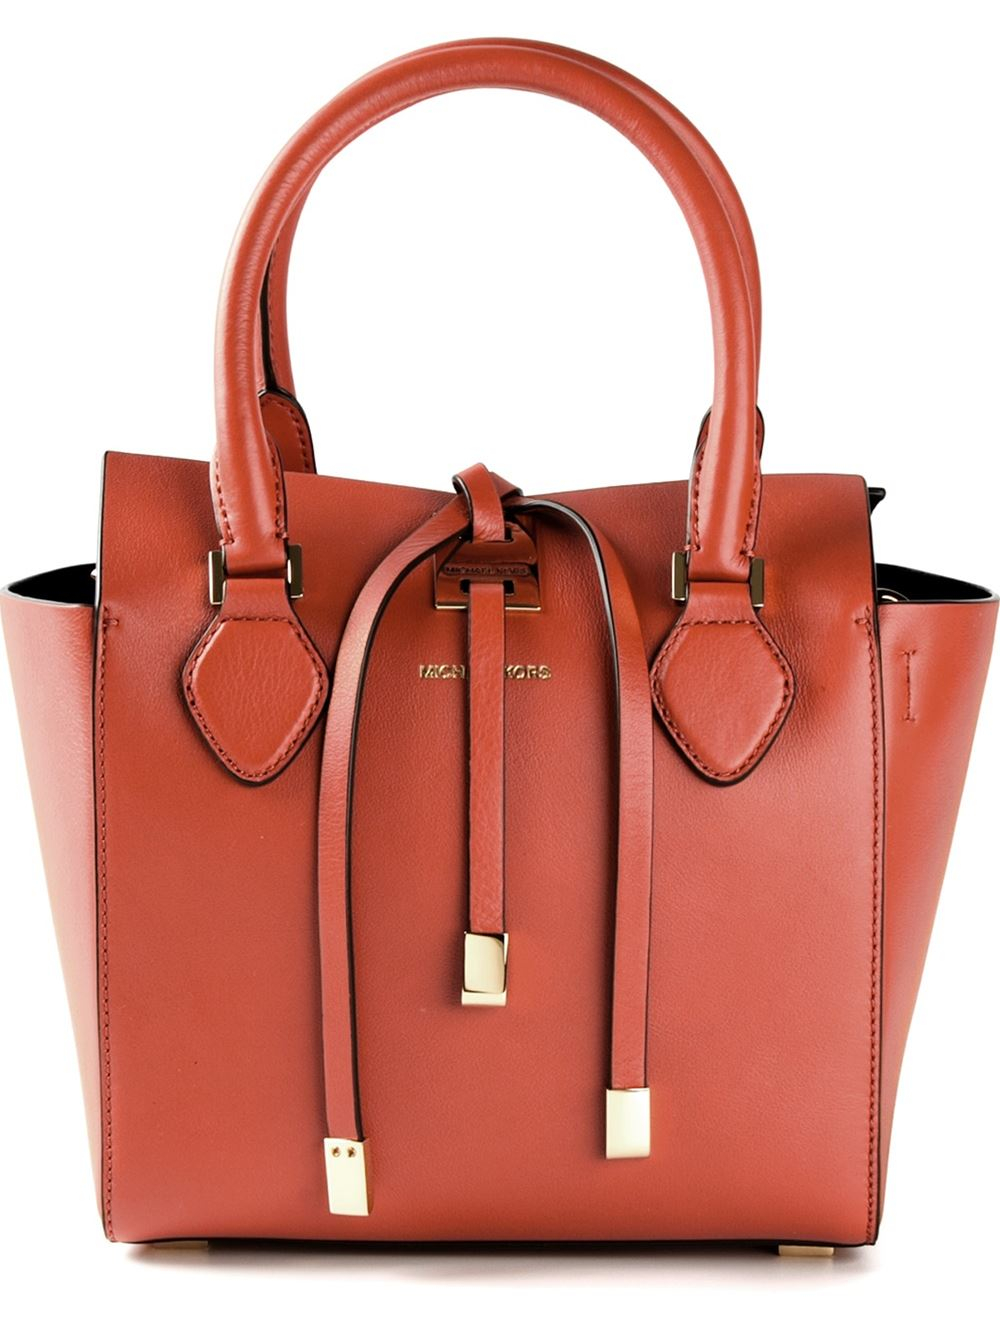 c1f684454f40 ... france lyst michael kors extra small miranda tote in orange b0a2c eeb0c